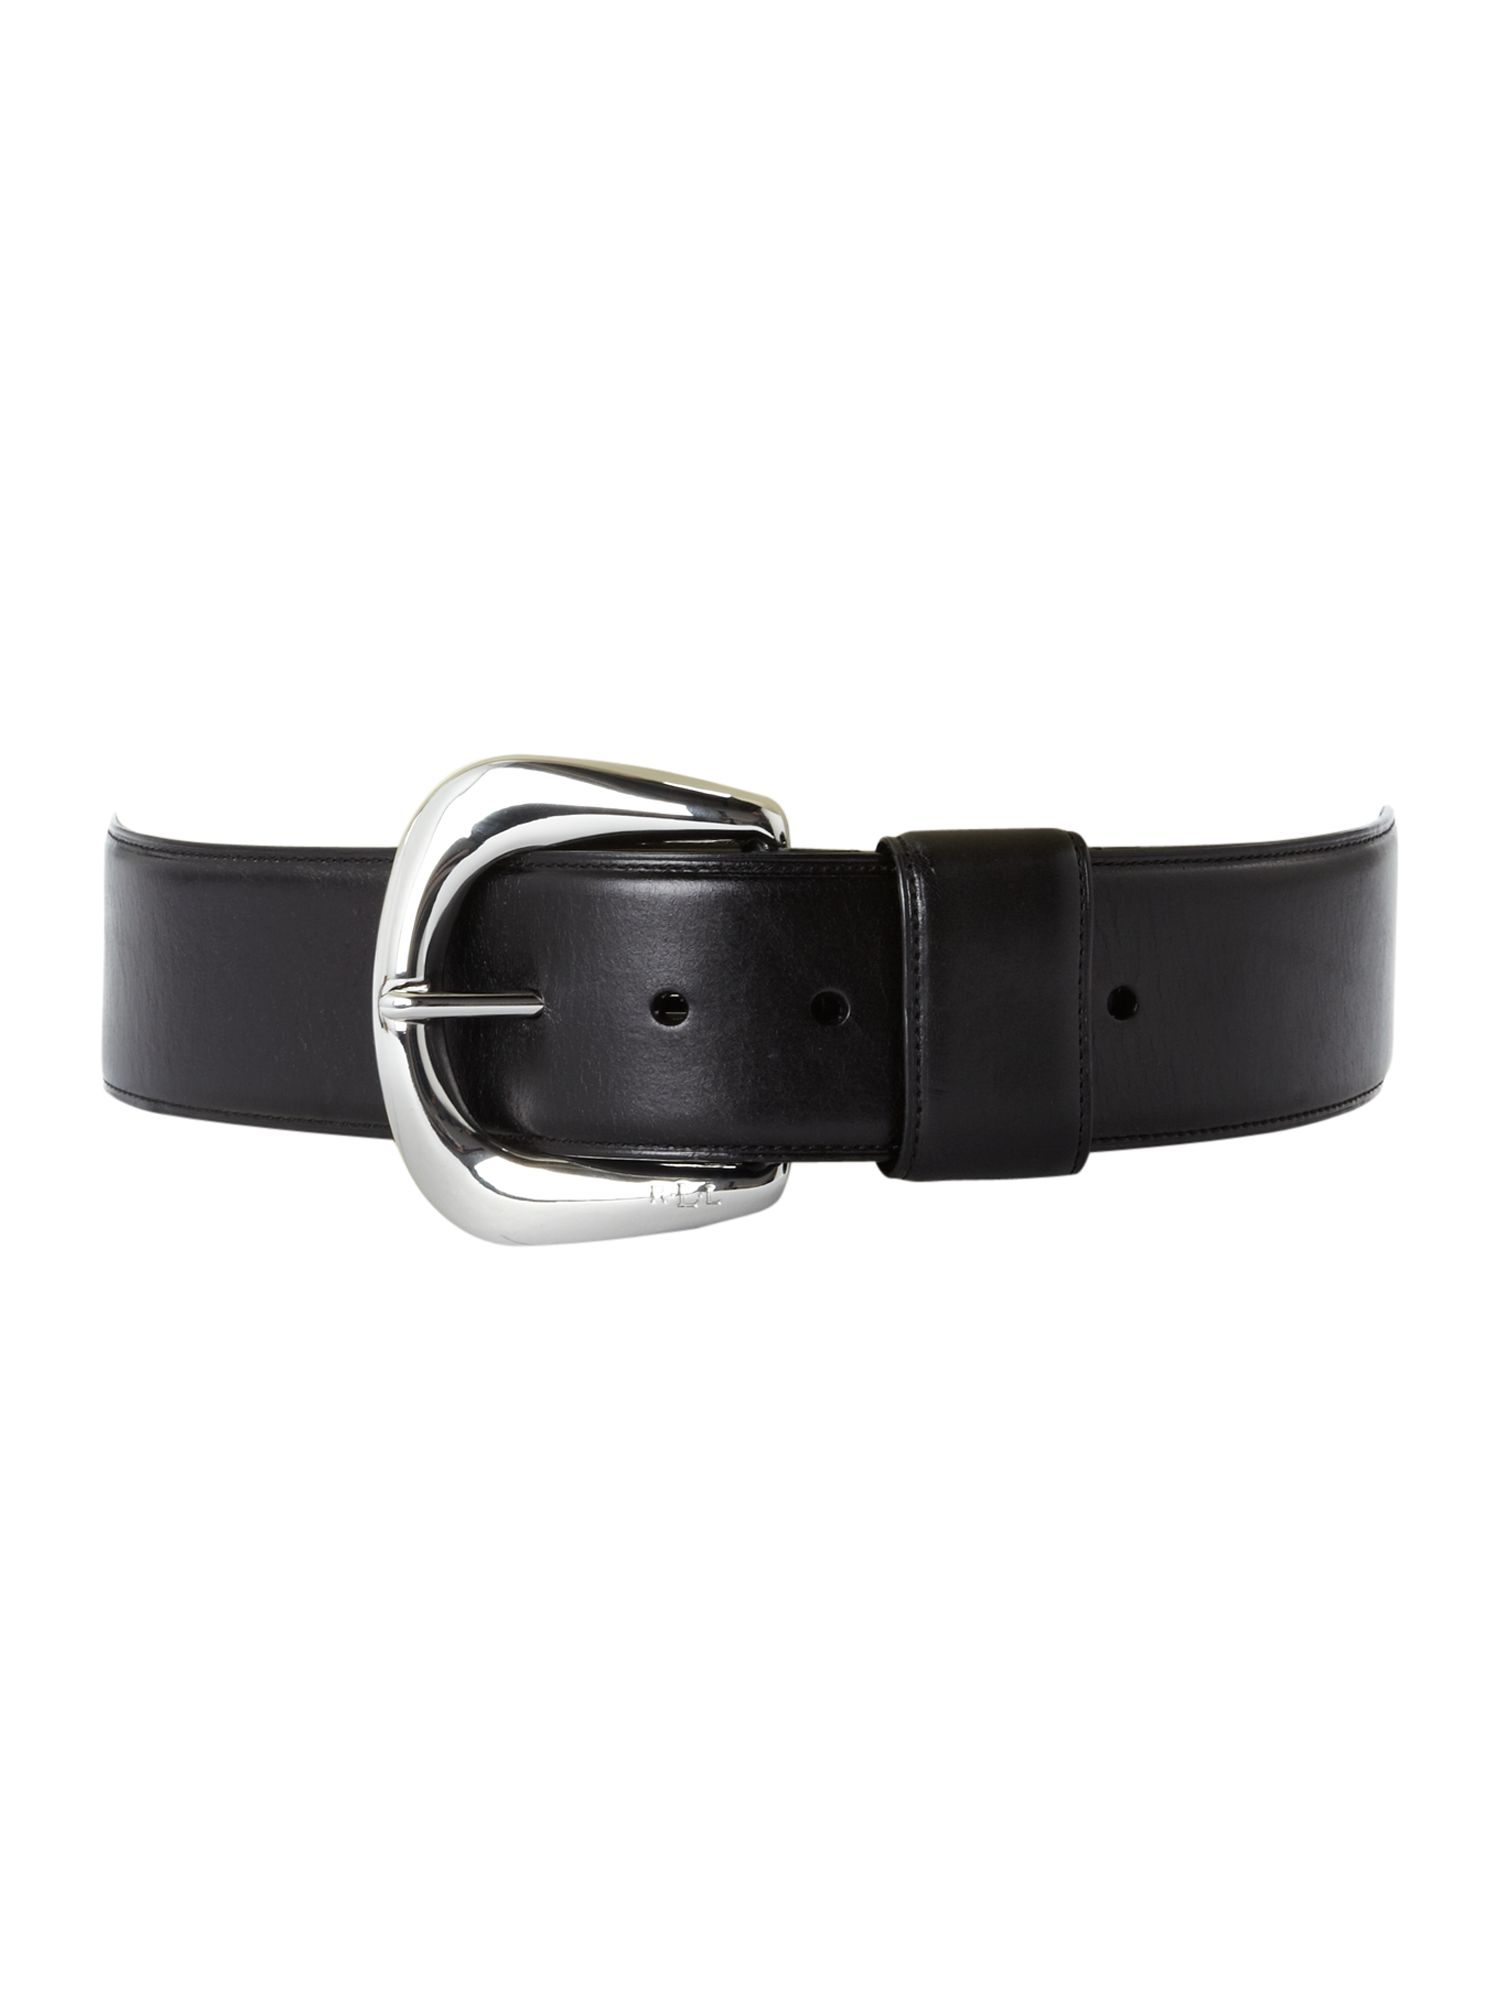 Vachetta belt with londonderry buckle